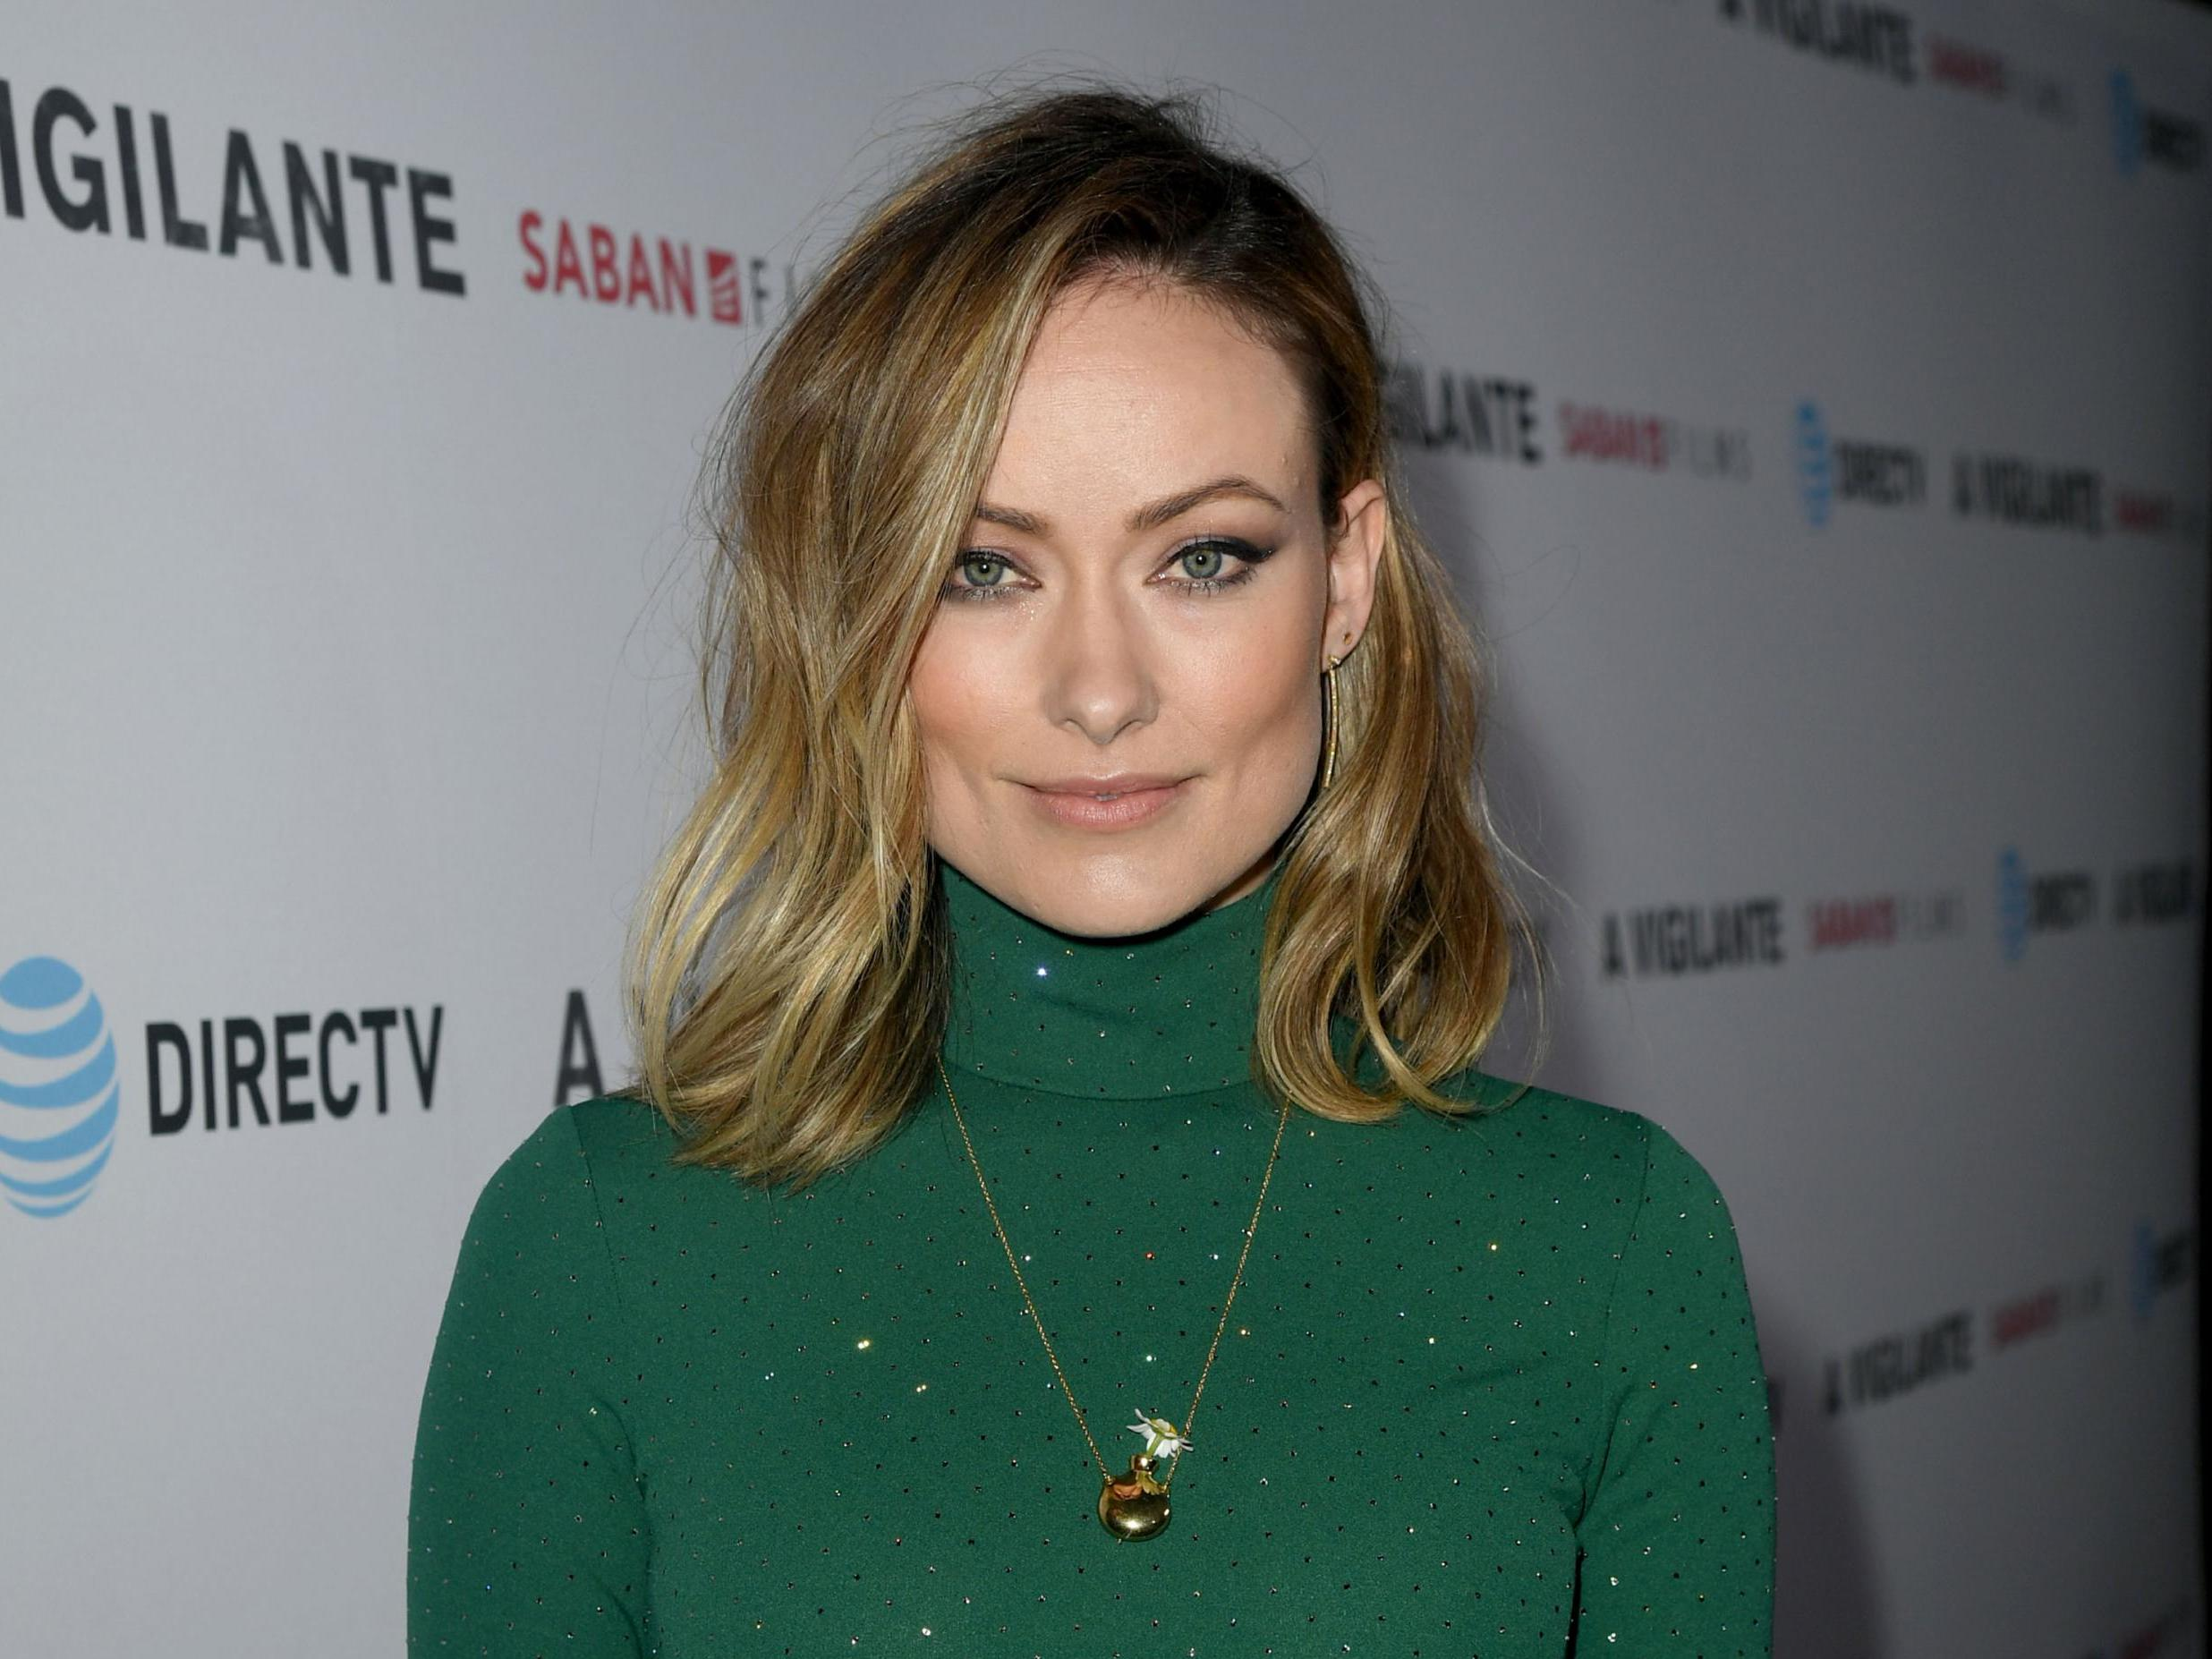 Olivia Wilde defends role in controversial Clint Eastwood film Richard Jewell: 'I did not have a say'